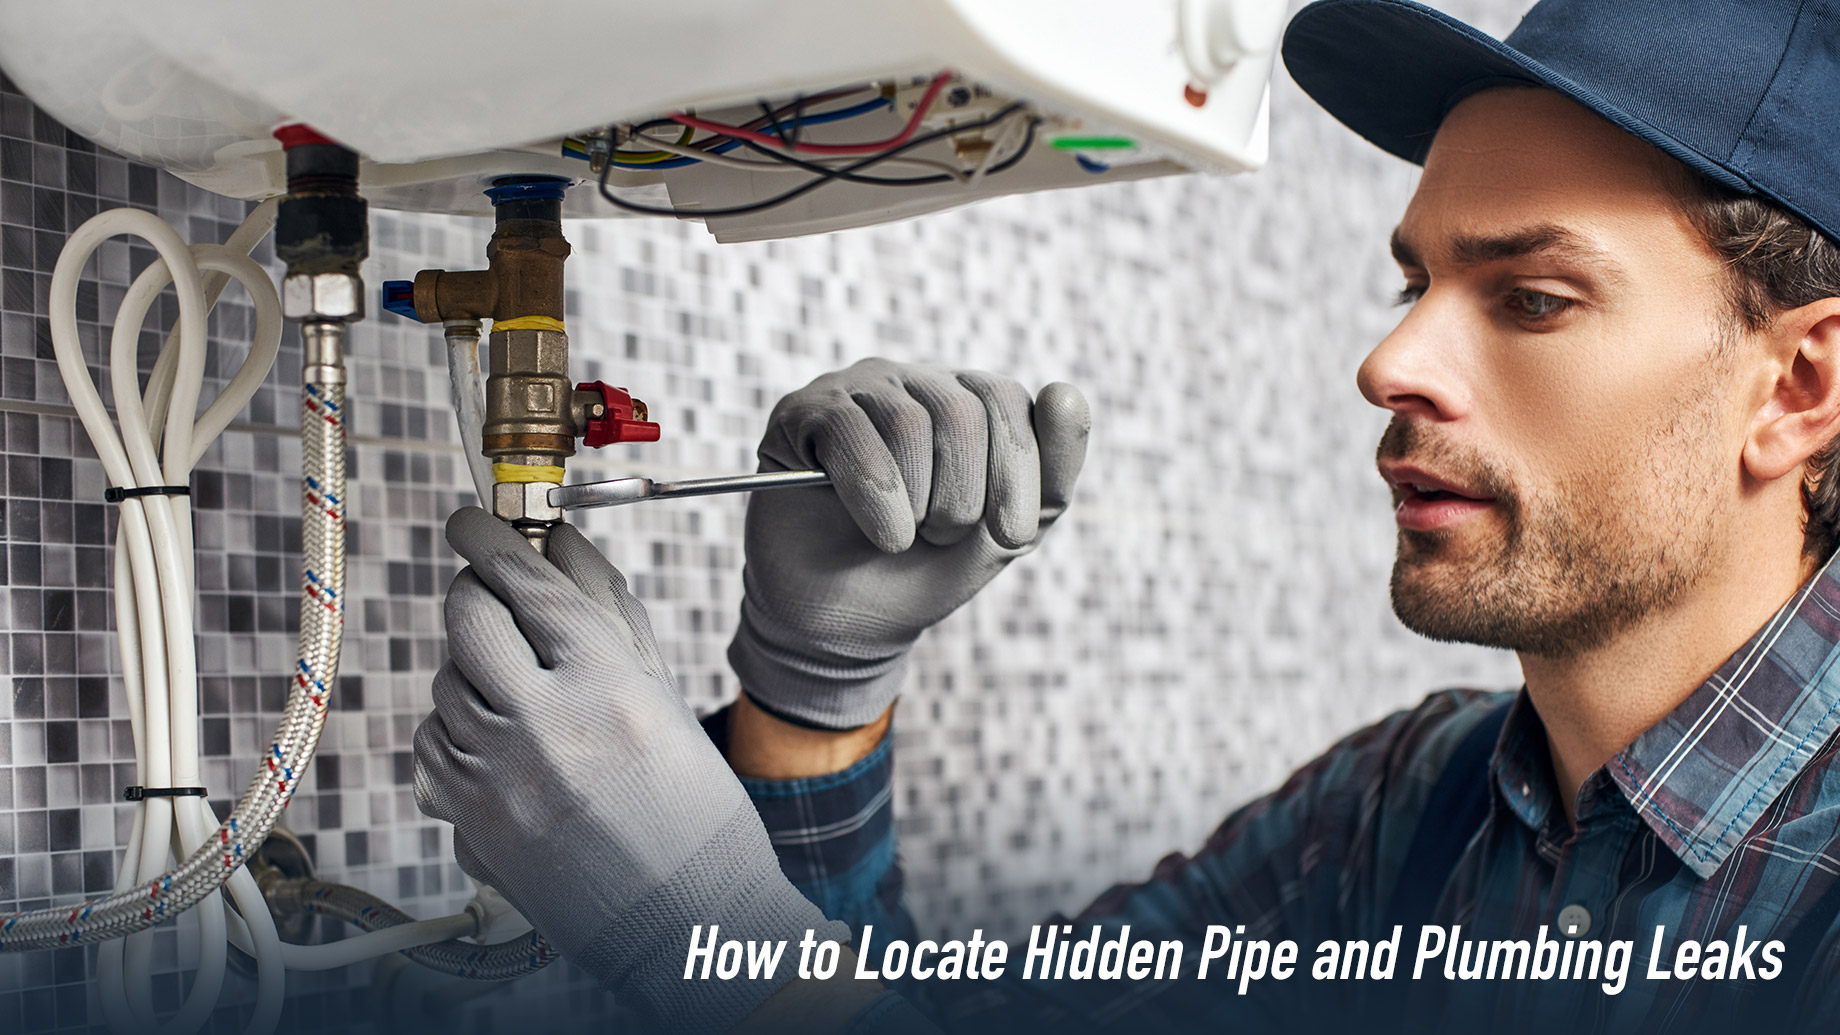 How to Locate Hidden Pipe and Plumbing Leaks